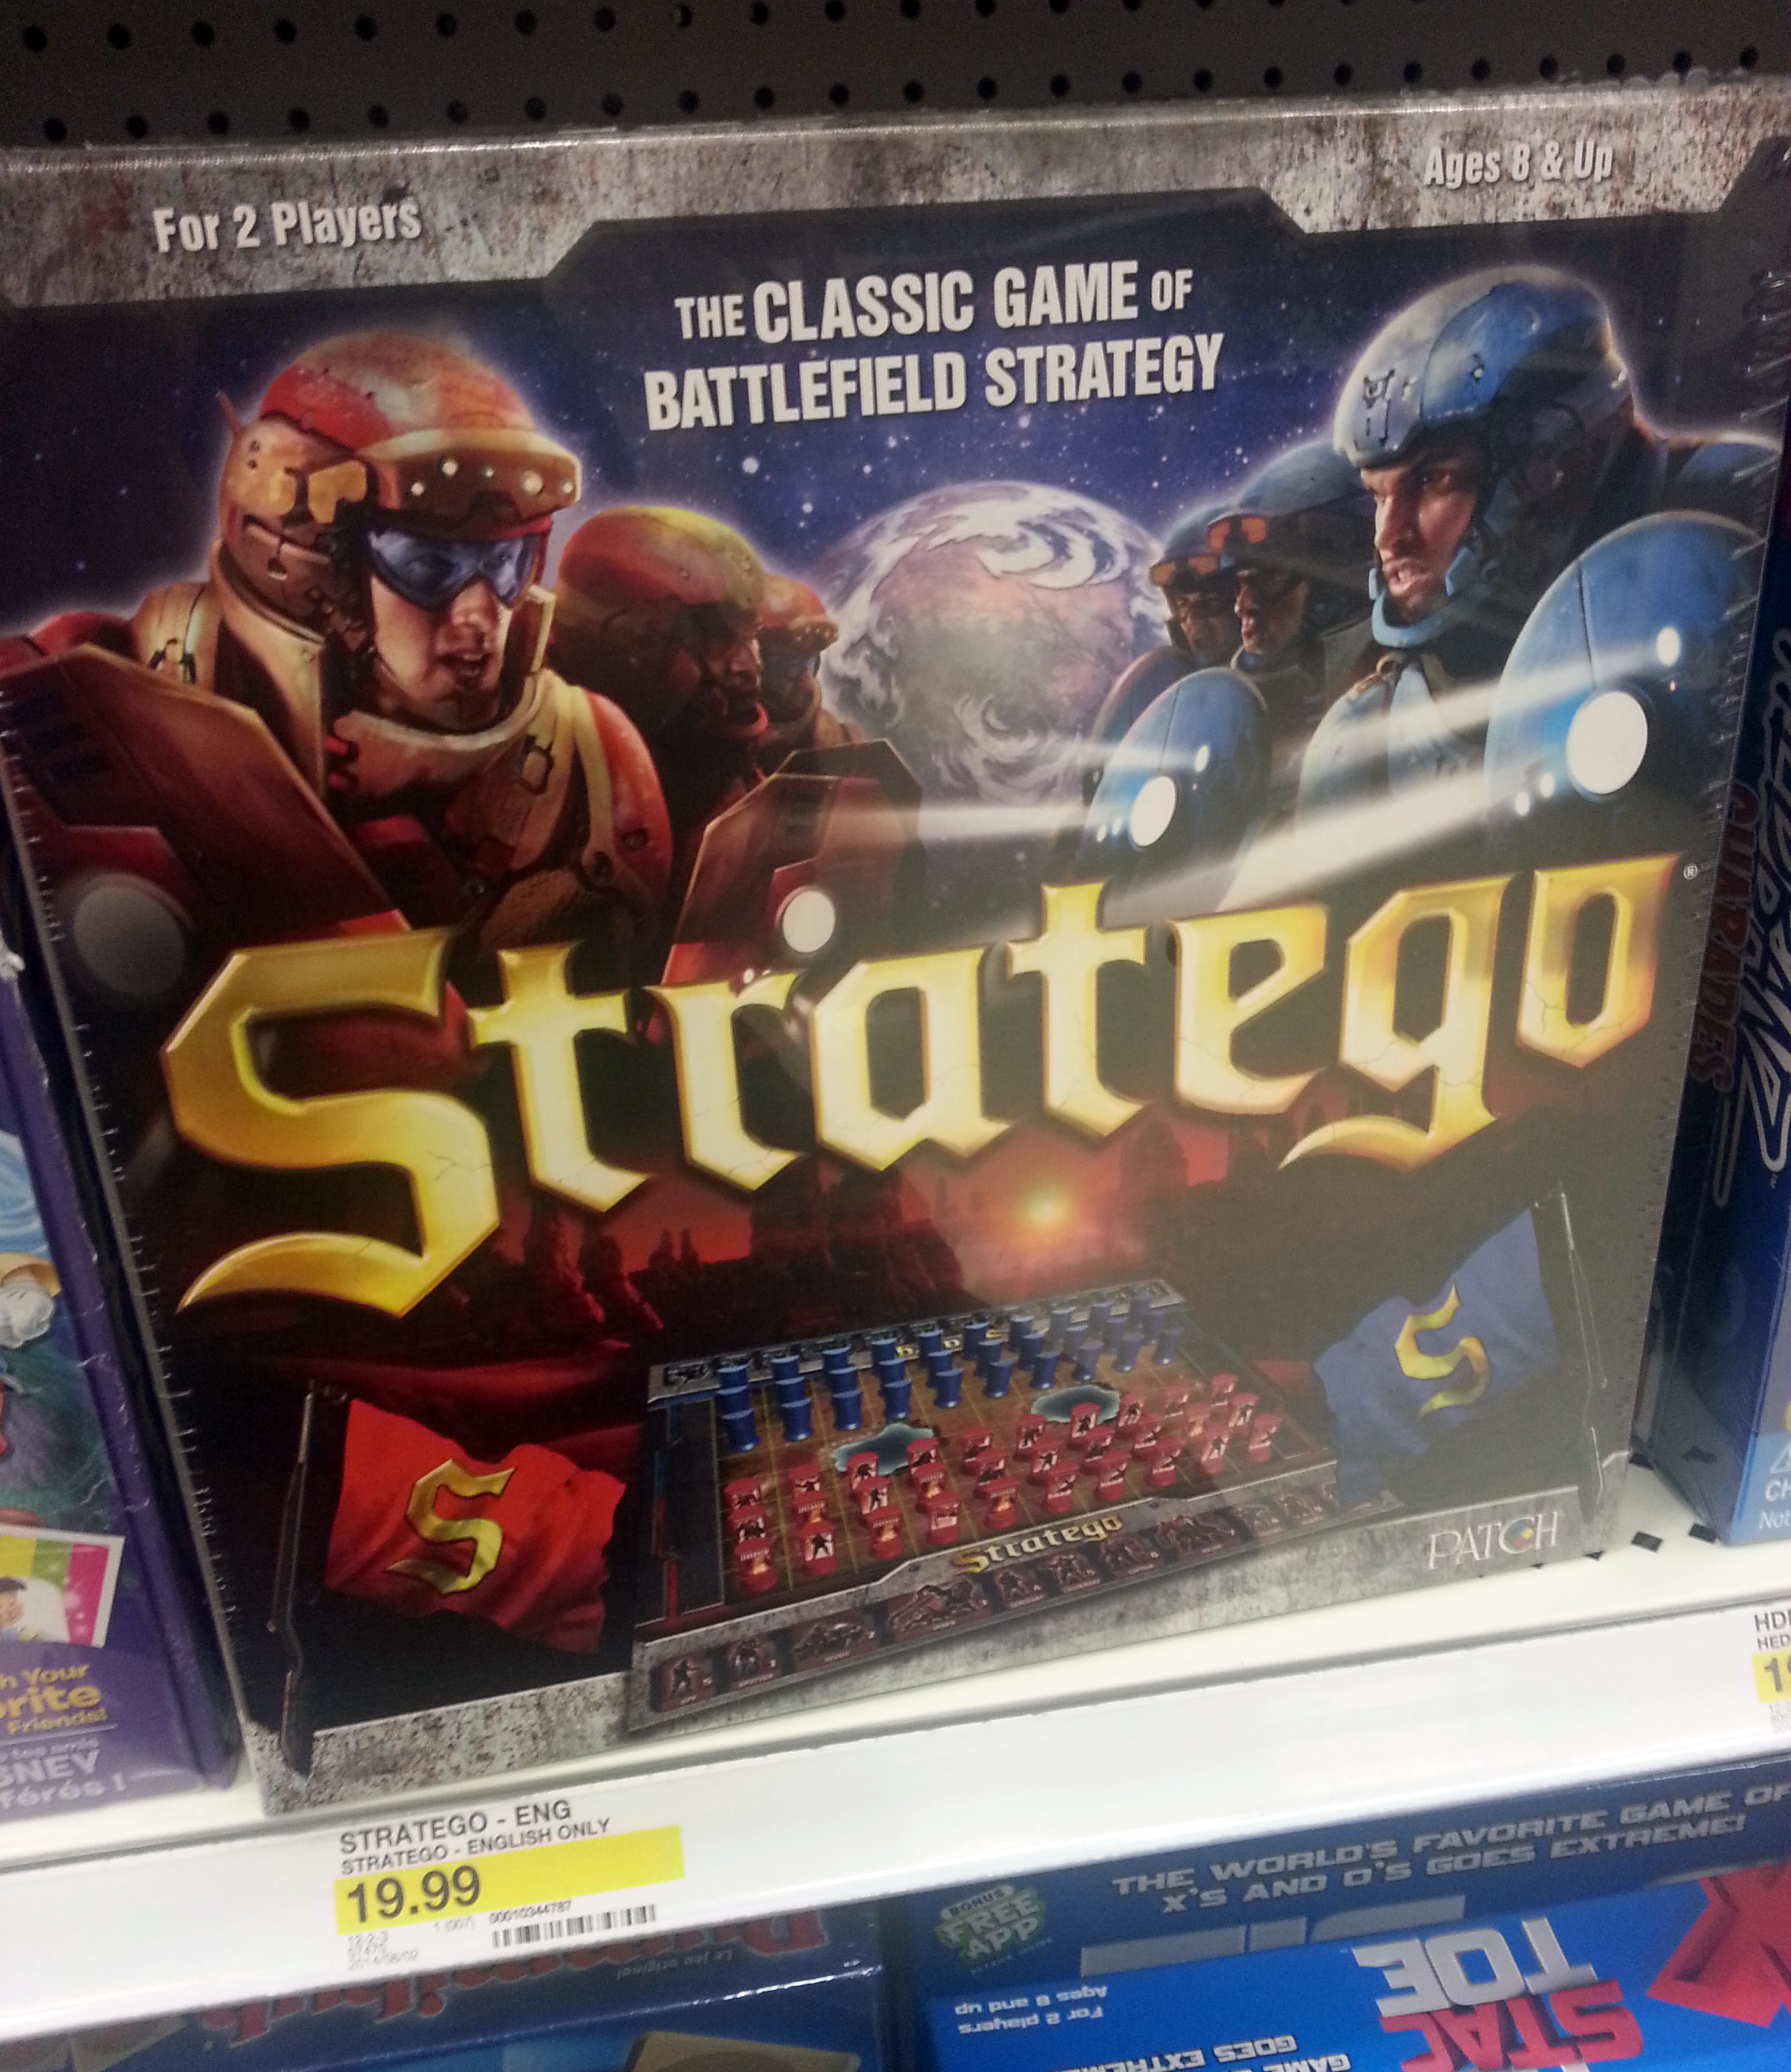 ca72840f Stratego Now with Patch Products